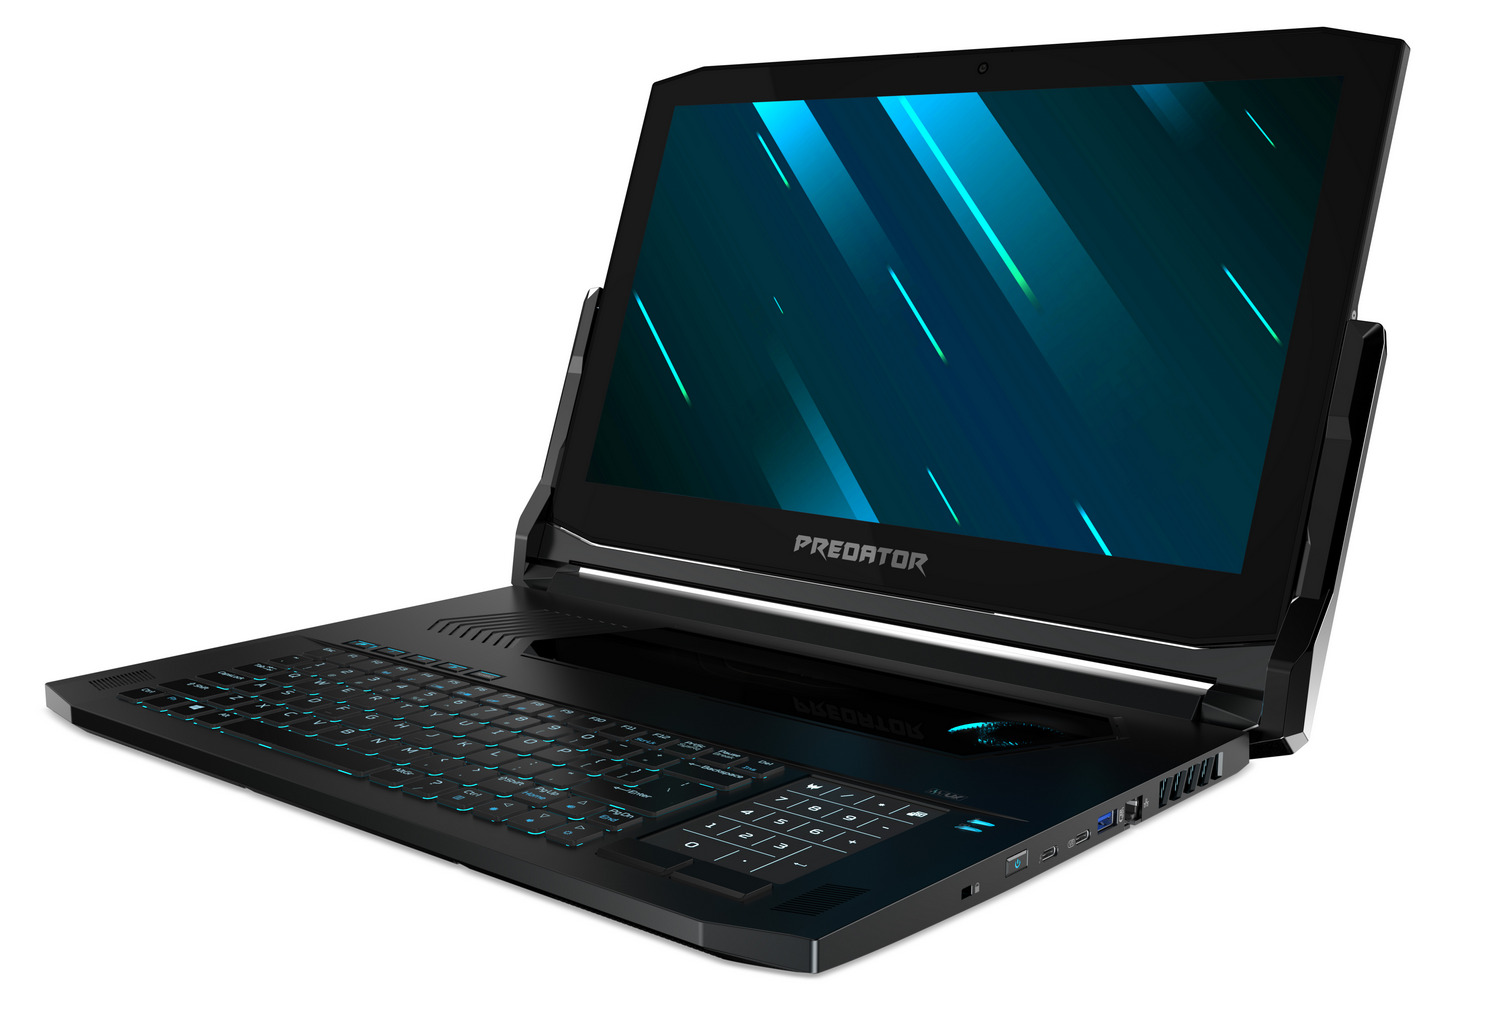 Acer reveals $4,000 Predator Triton 900, cheaper Triton 700 at CES 2019